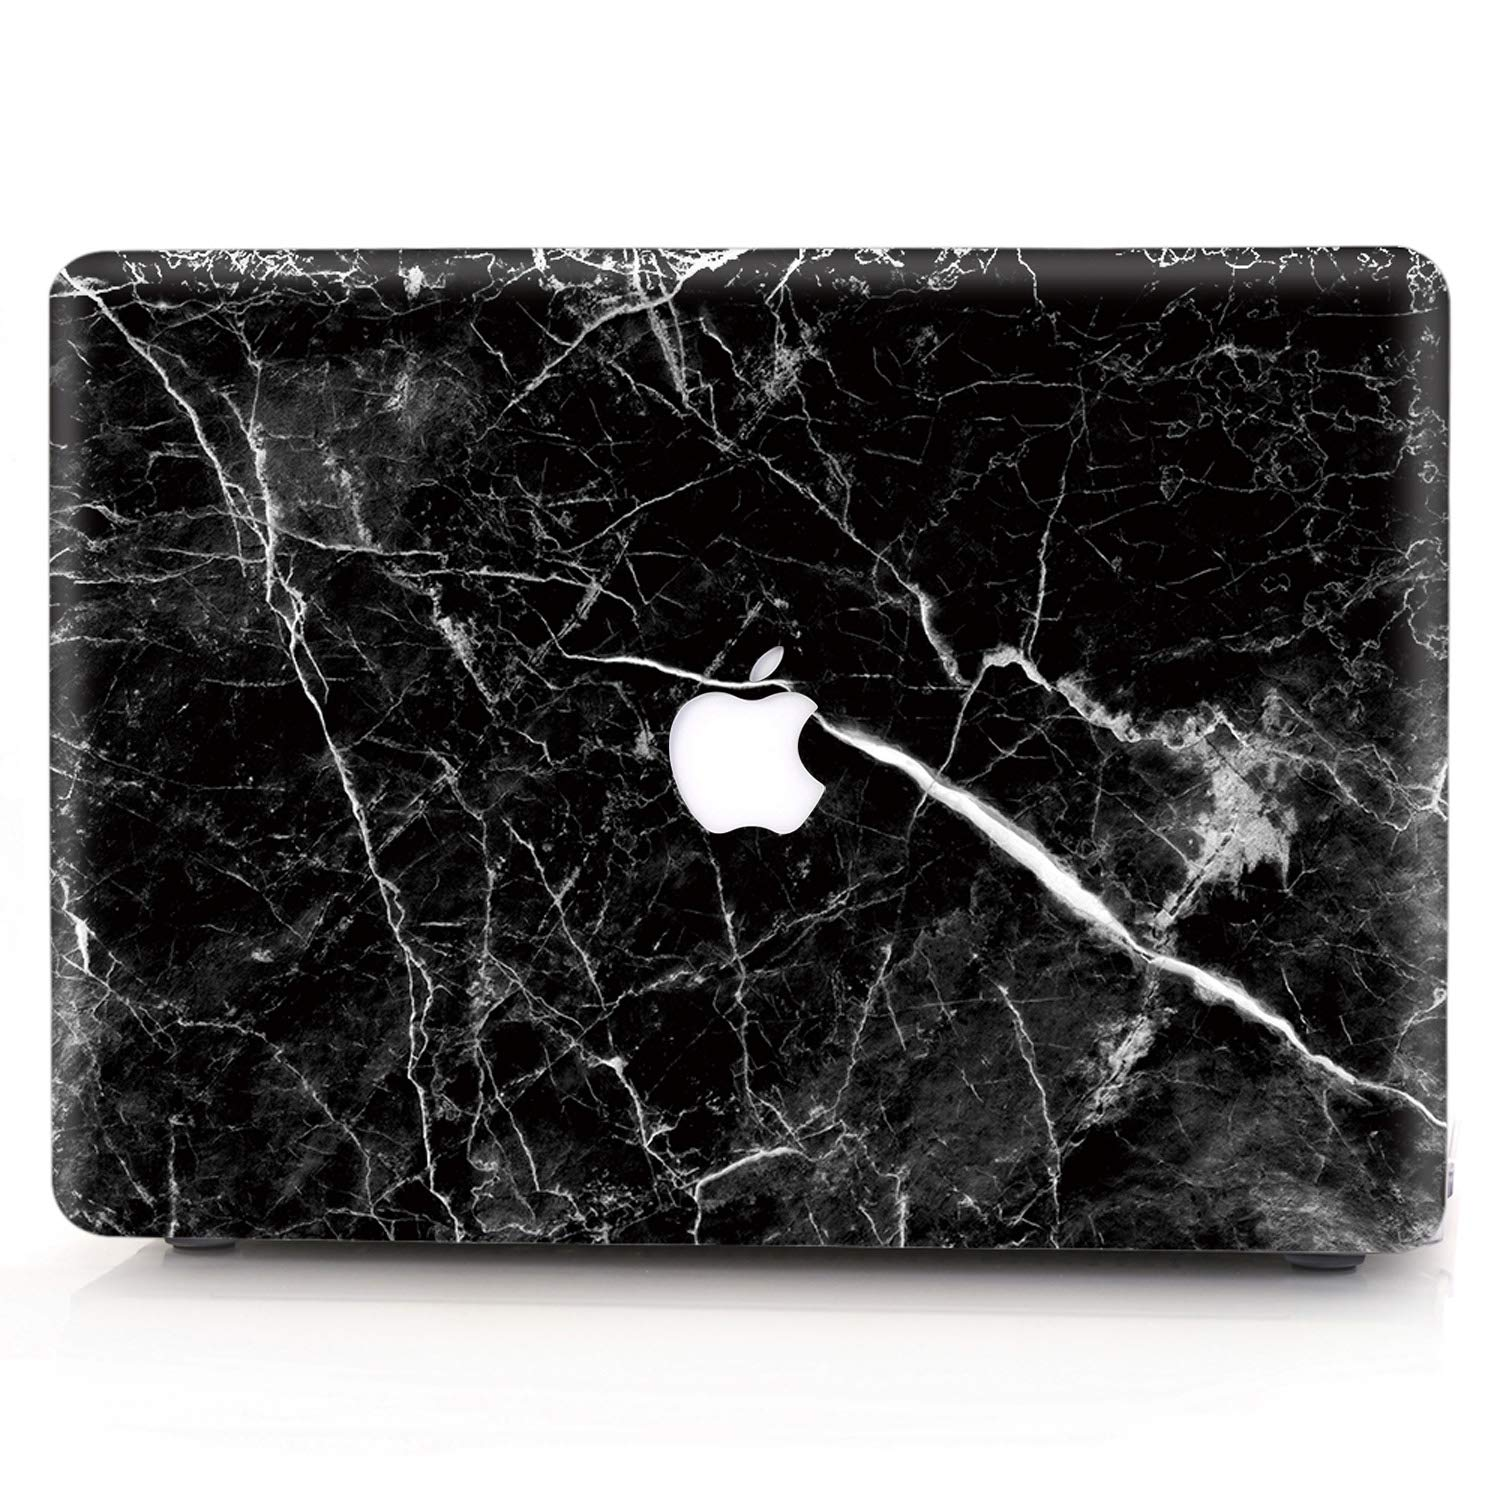 MacBook Air 13 Inch Case A1932 (2018 Release), AQYLQ Matte Plastic Hard Shell Cover for Apple MacBook Air 13 Inch with Retina Display fits Touch ID, ...